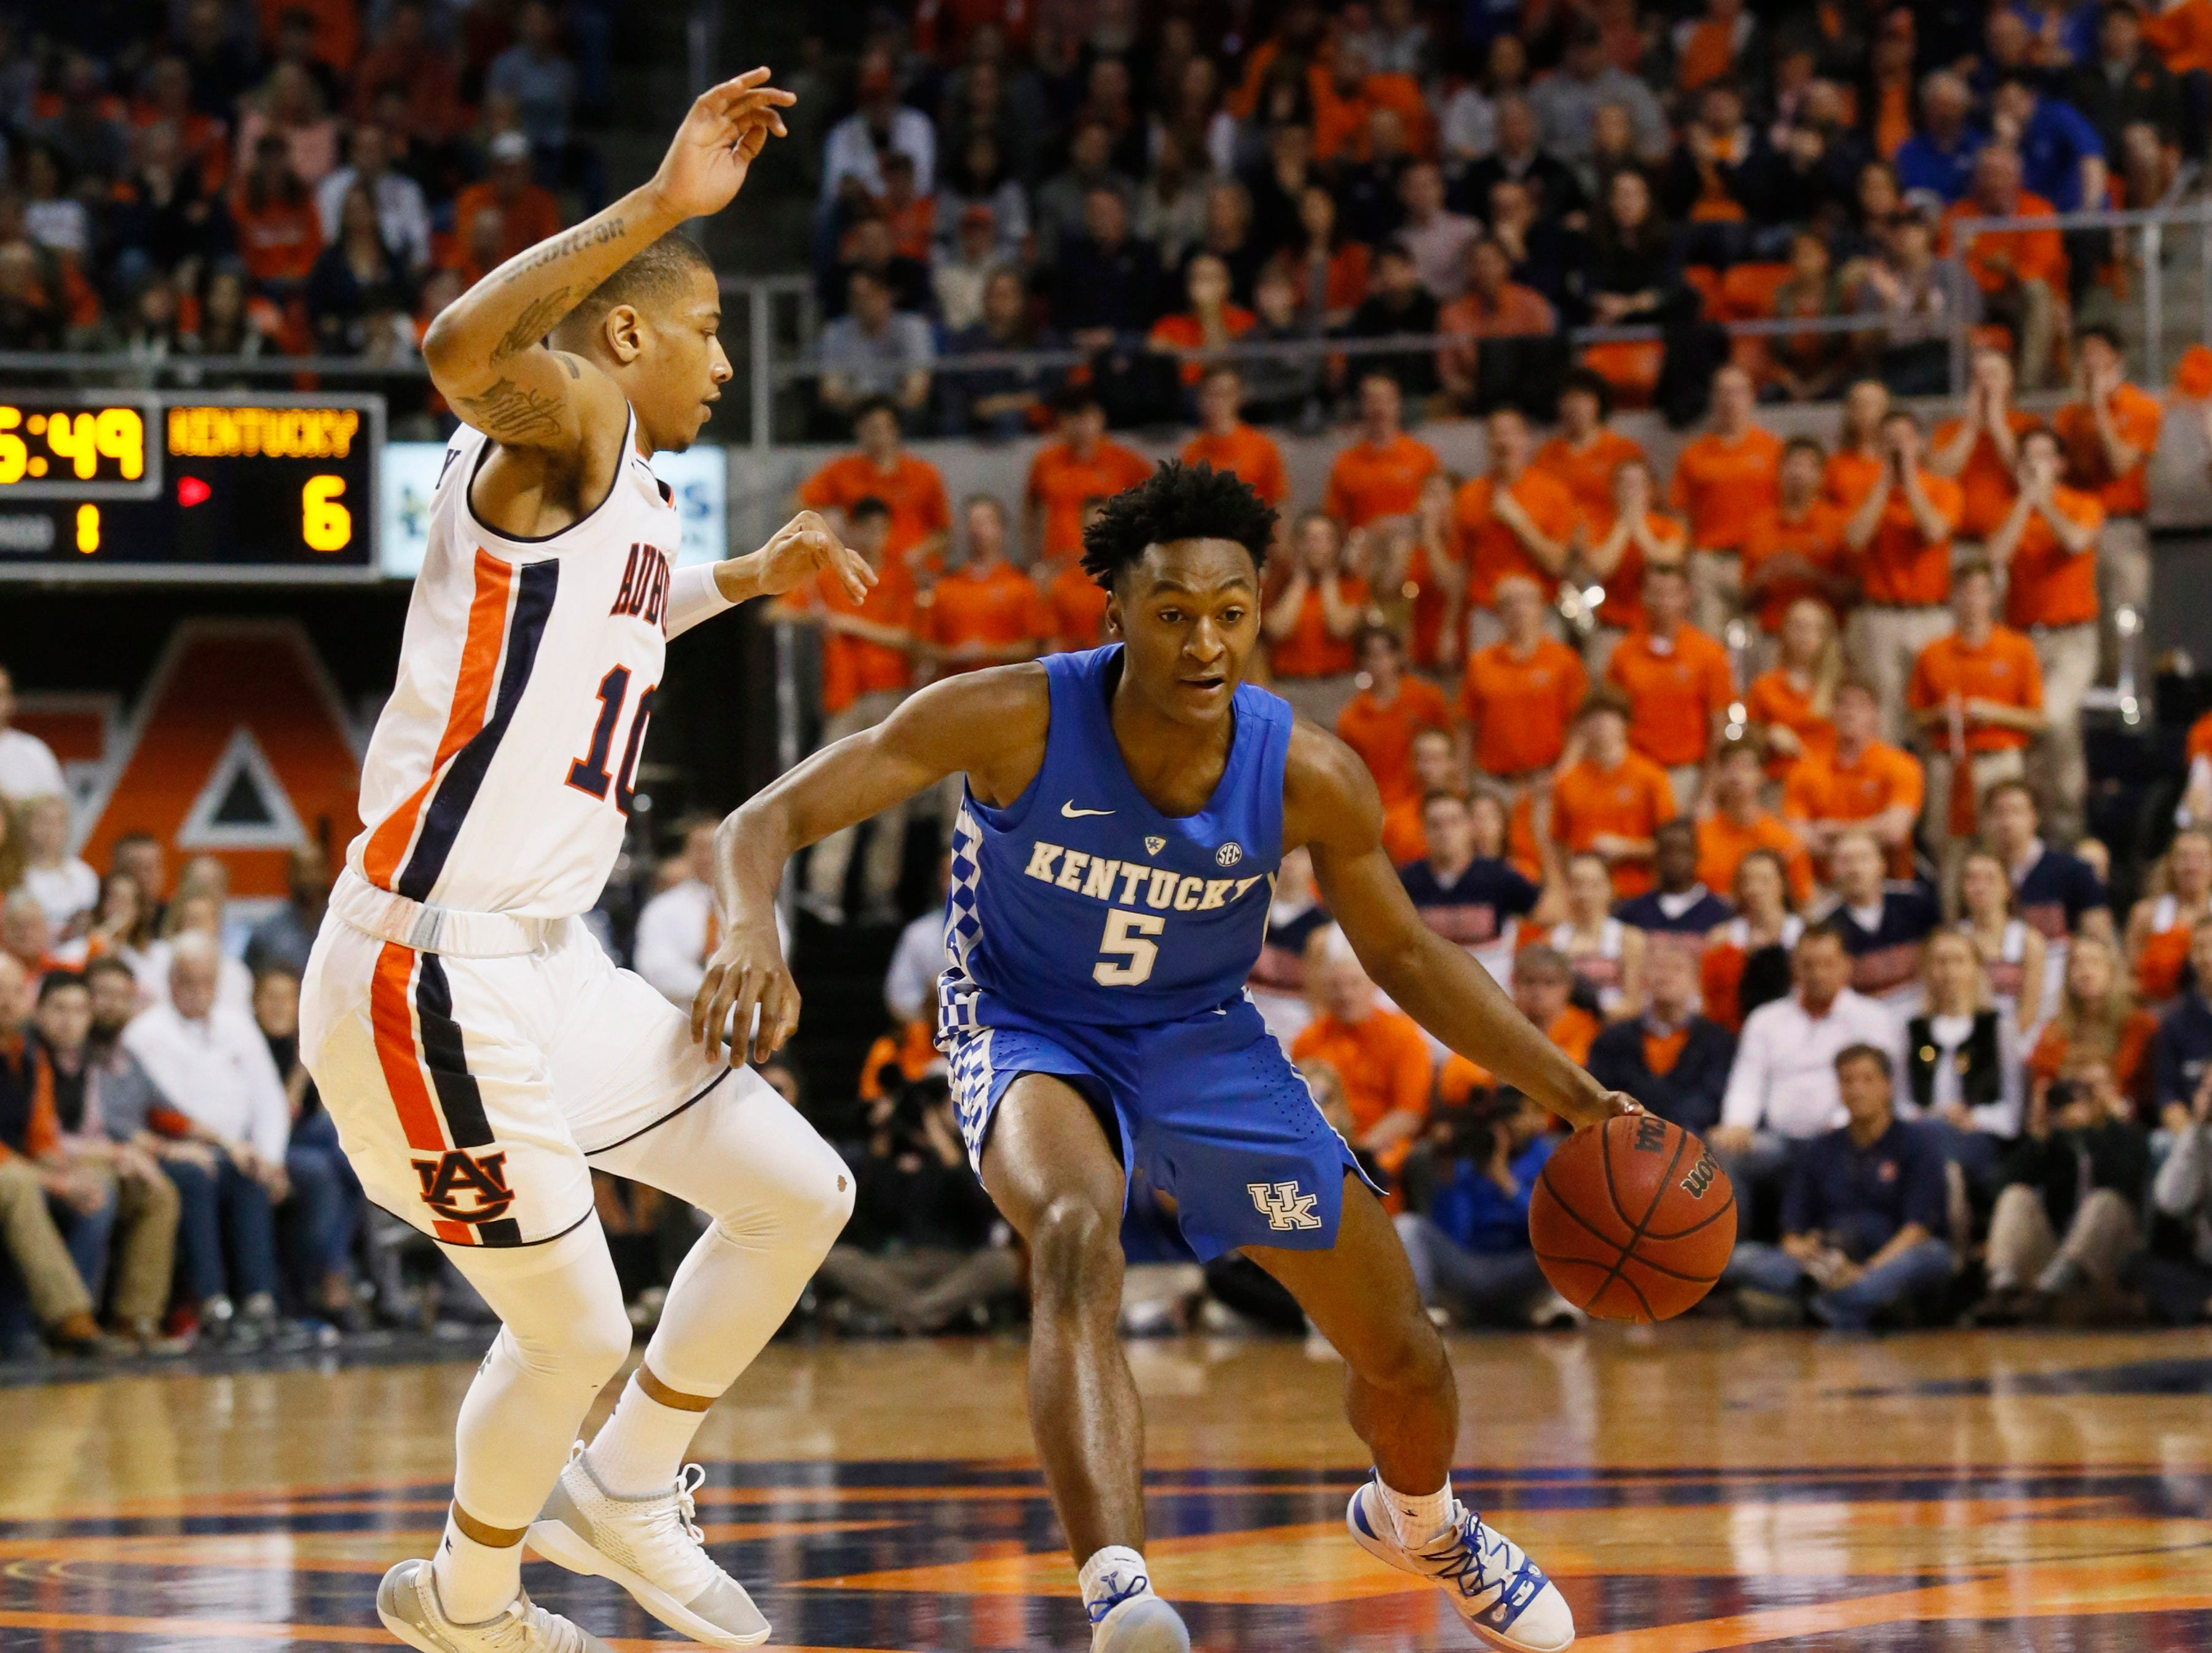 Jan 19, 2019; Auburn, AL, USA; Kentucky Wildcats guard Immanuel Quickley (5) is pressured by Auburn Tigers guard Samir Doughty (10) during the first half at Auburn Arena. Mandatory Credit: John Reed-USA TODAY Sports